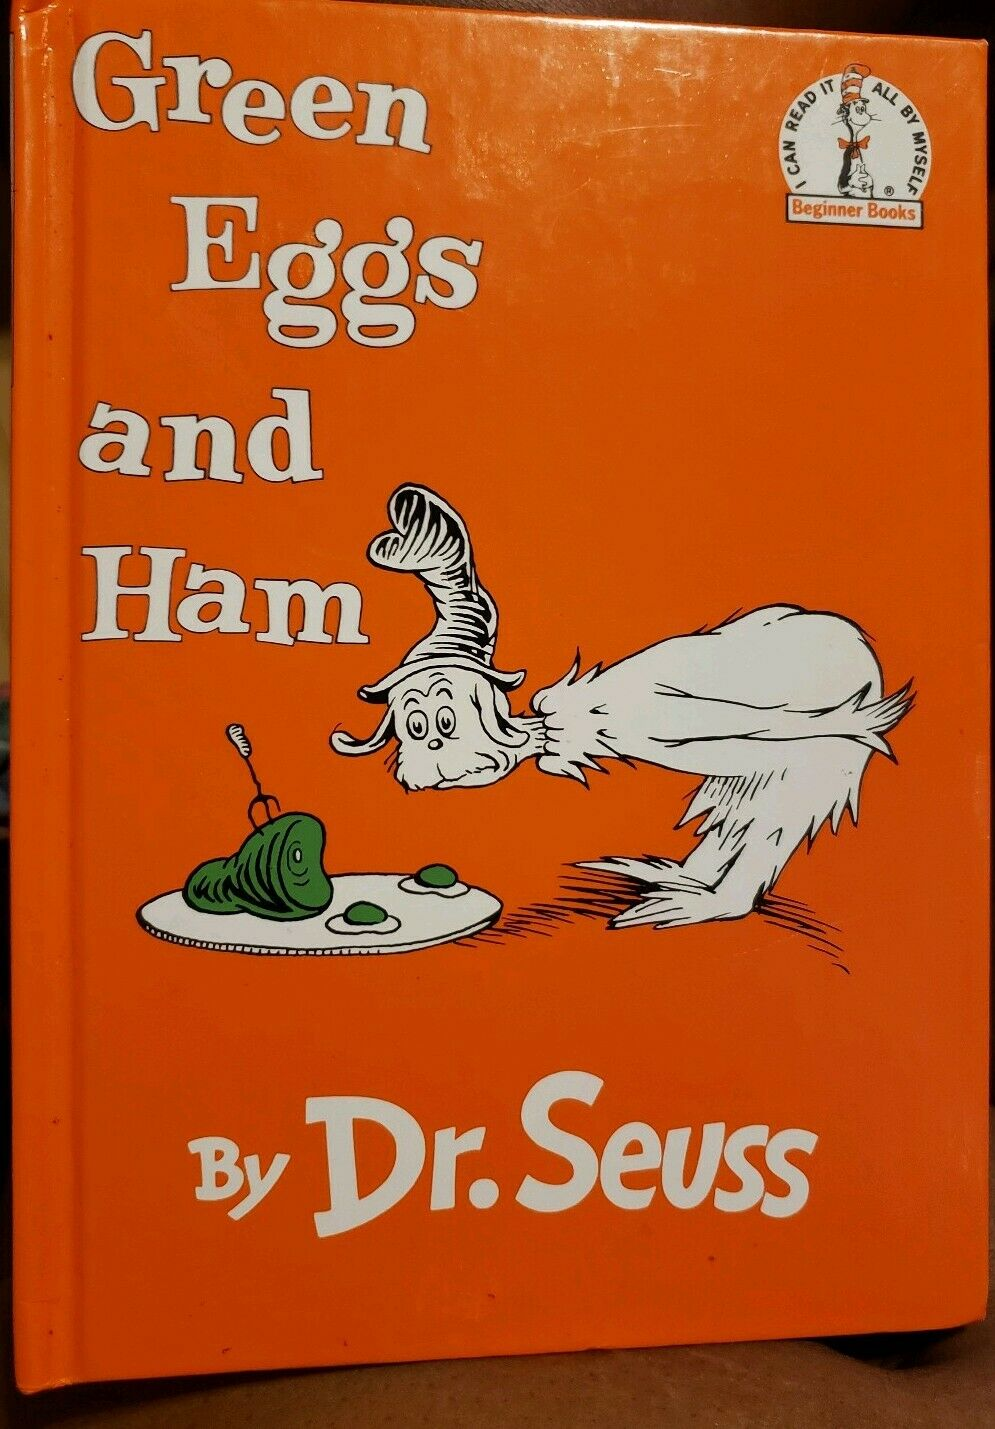 Dr Seuss Books Online Free Pdf With Pictures